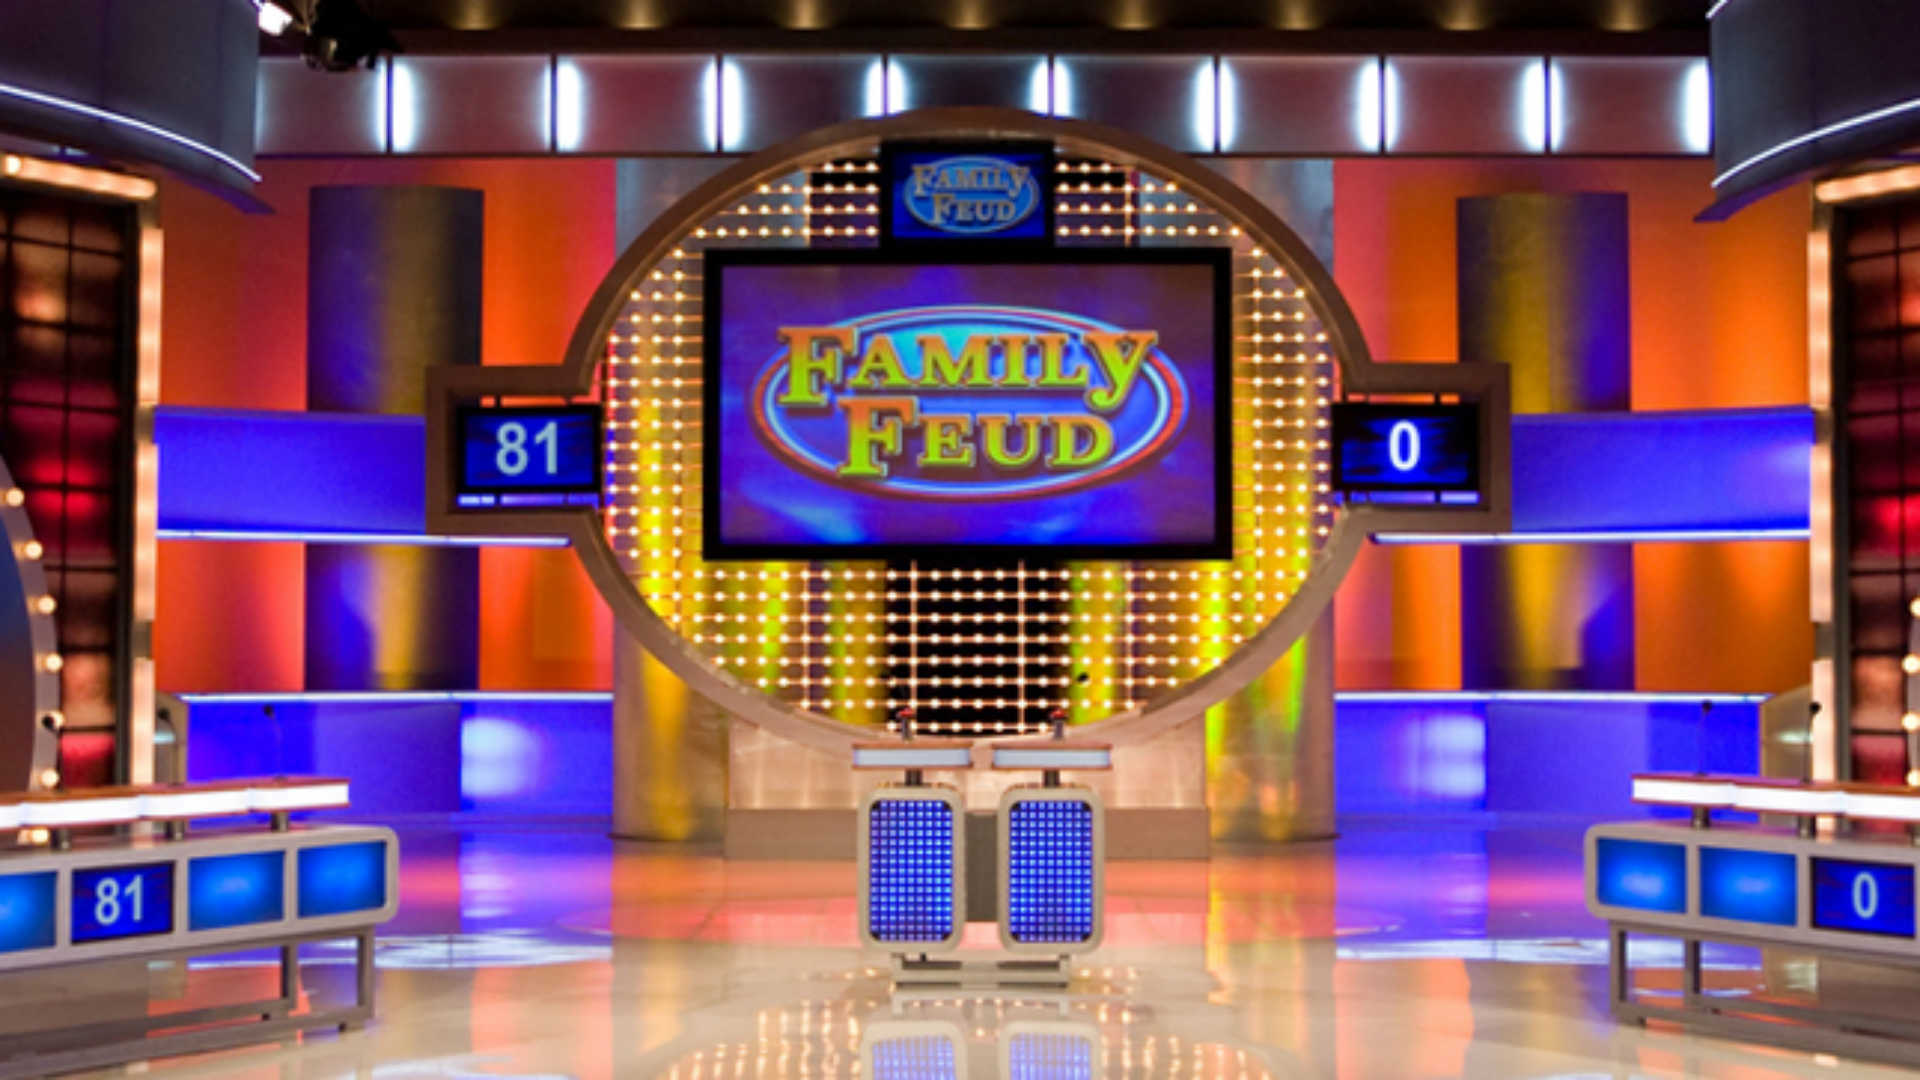 Family Feud Car Game